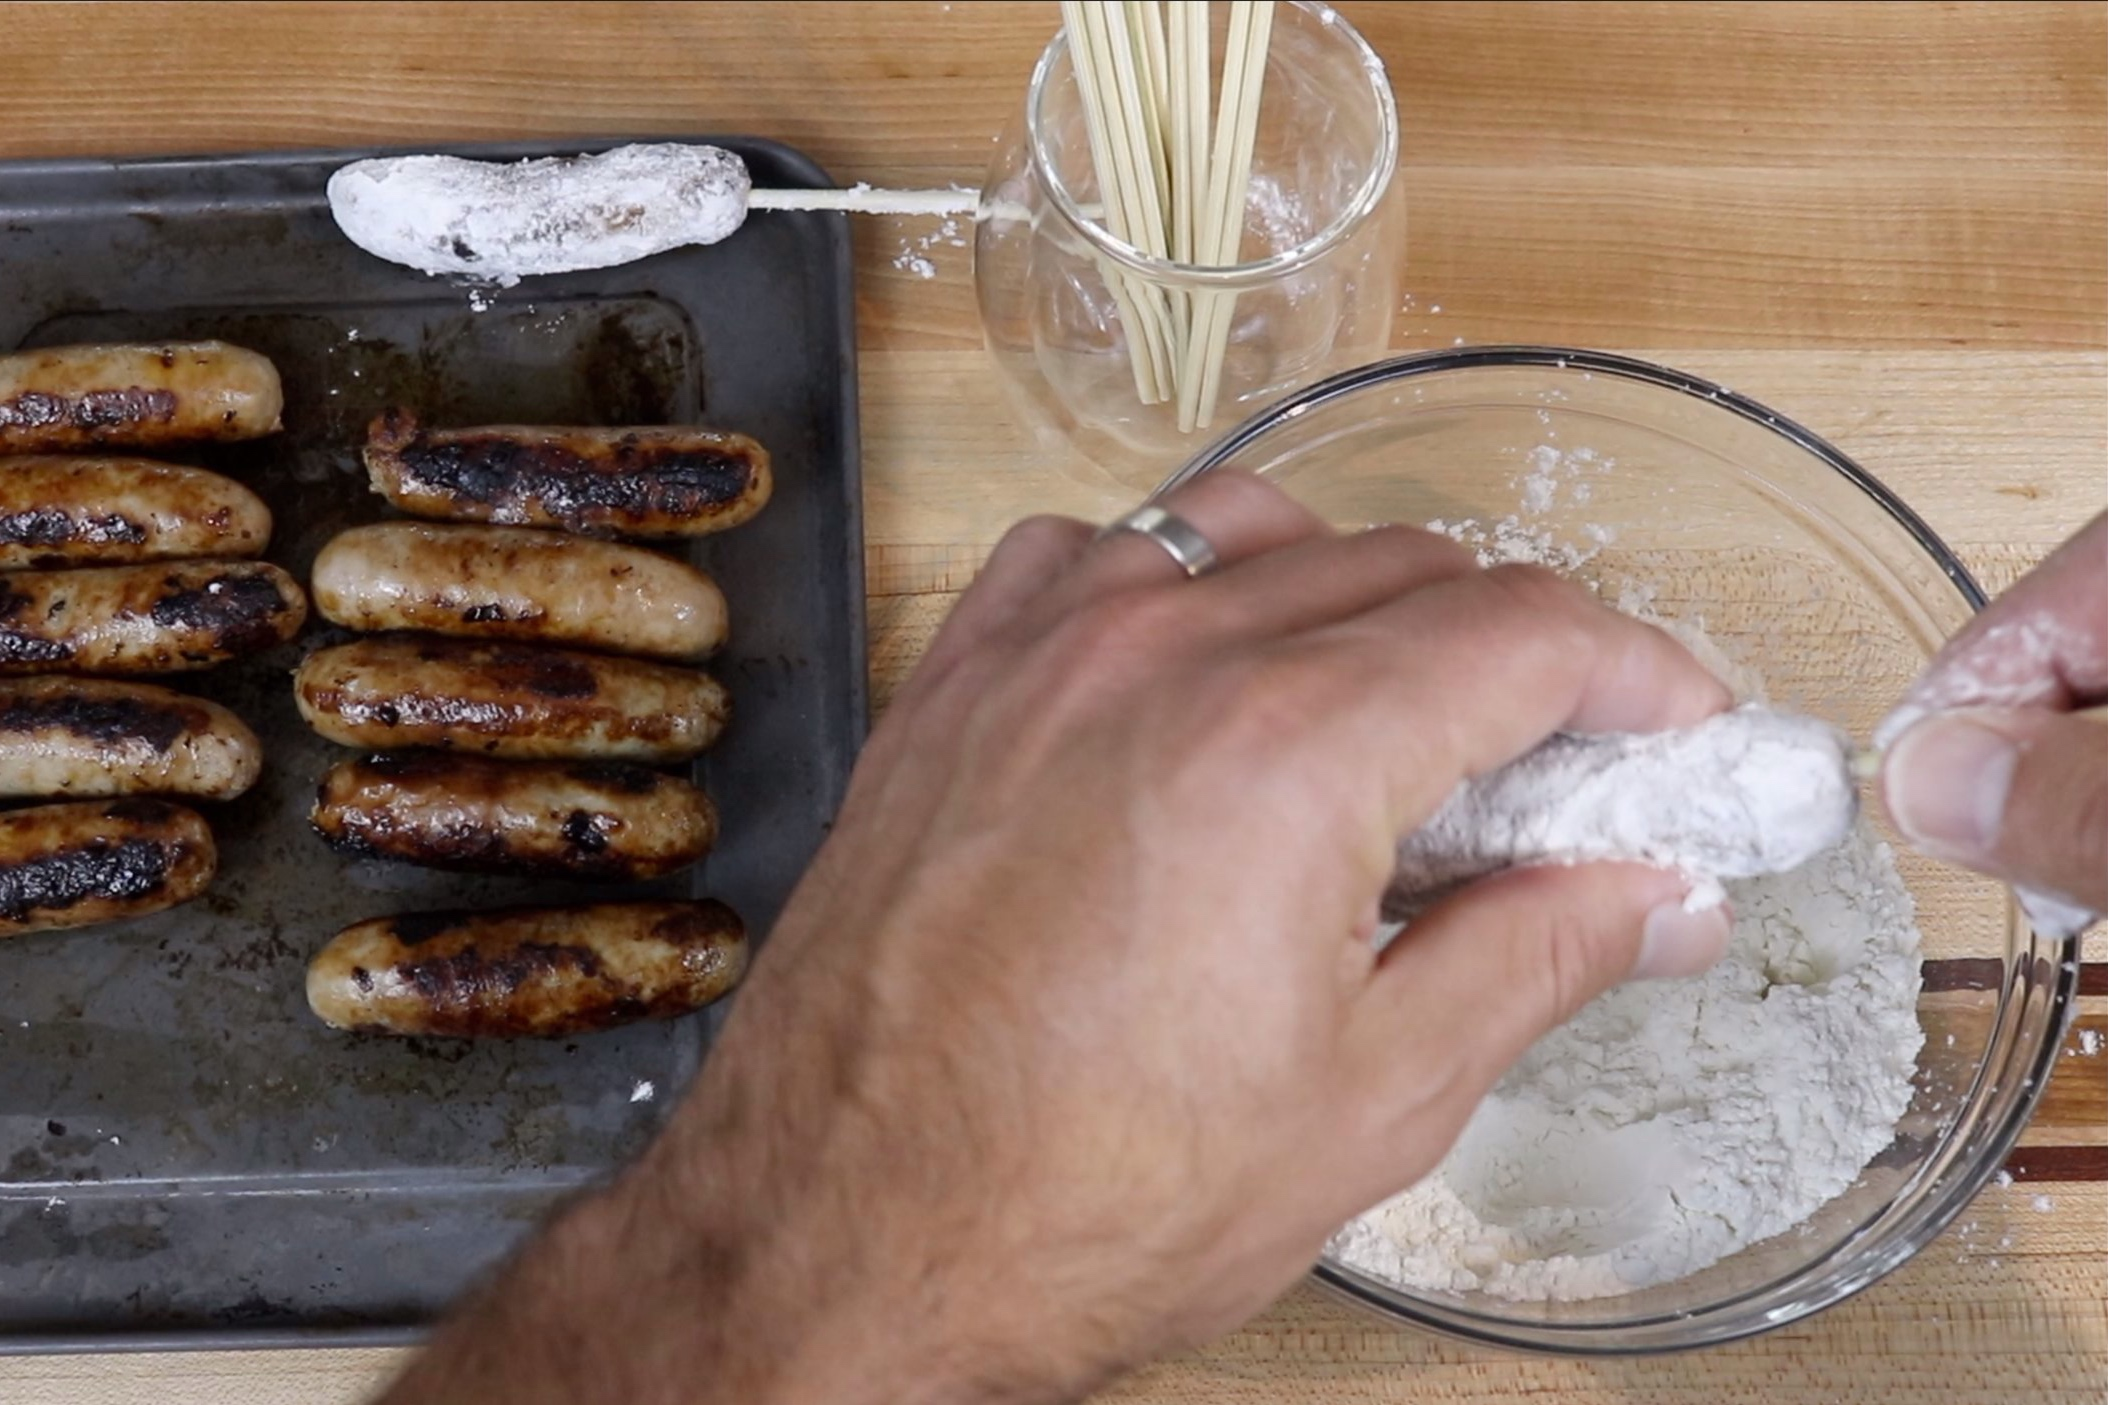 4. Once sausages are cool enough to handle, dredge each link in flour and skewer each sausage lengthwise with a wooden stick. Set aside. -